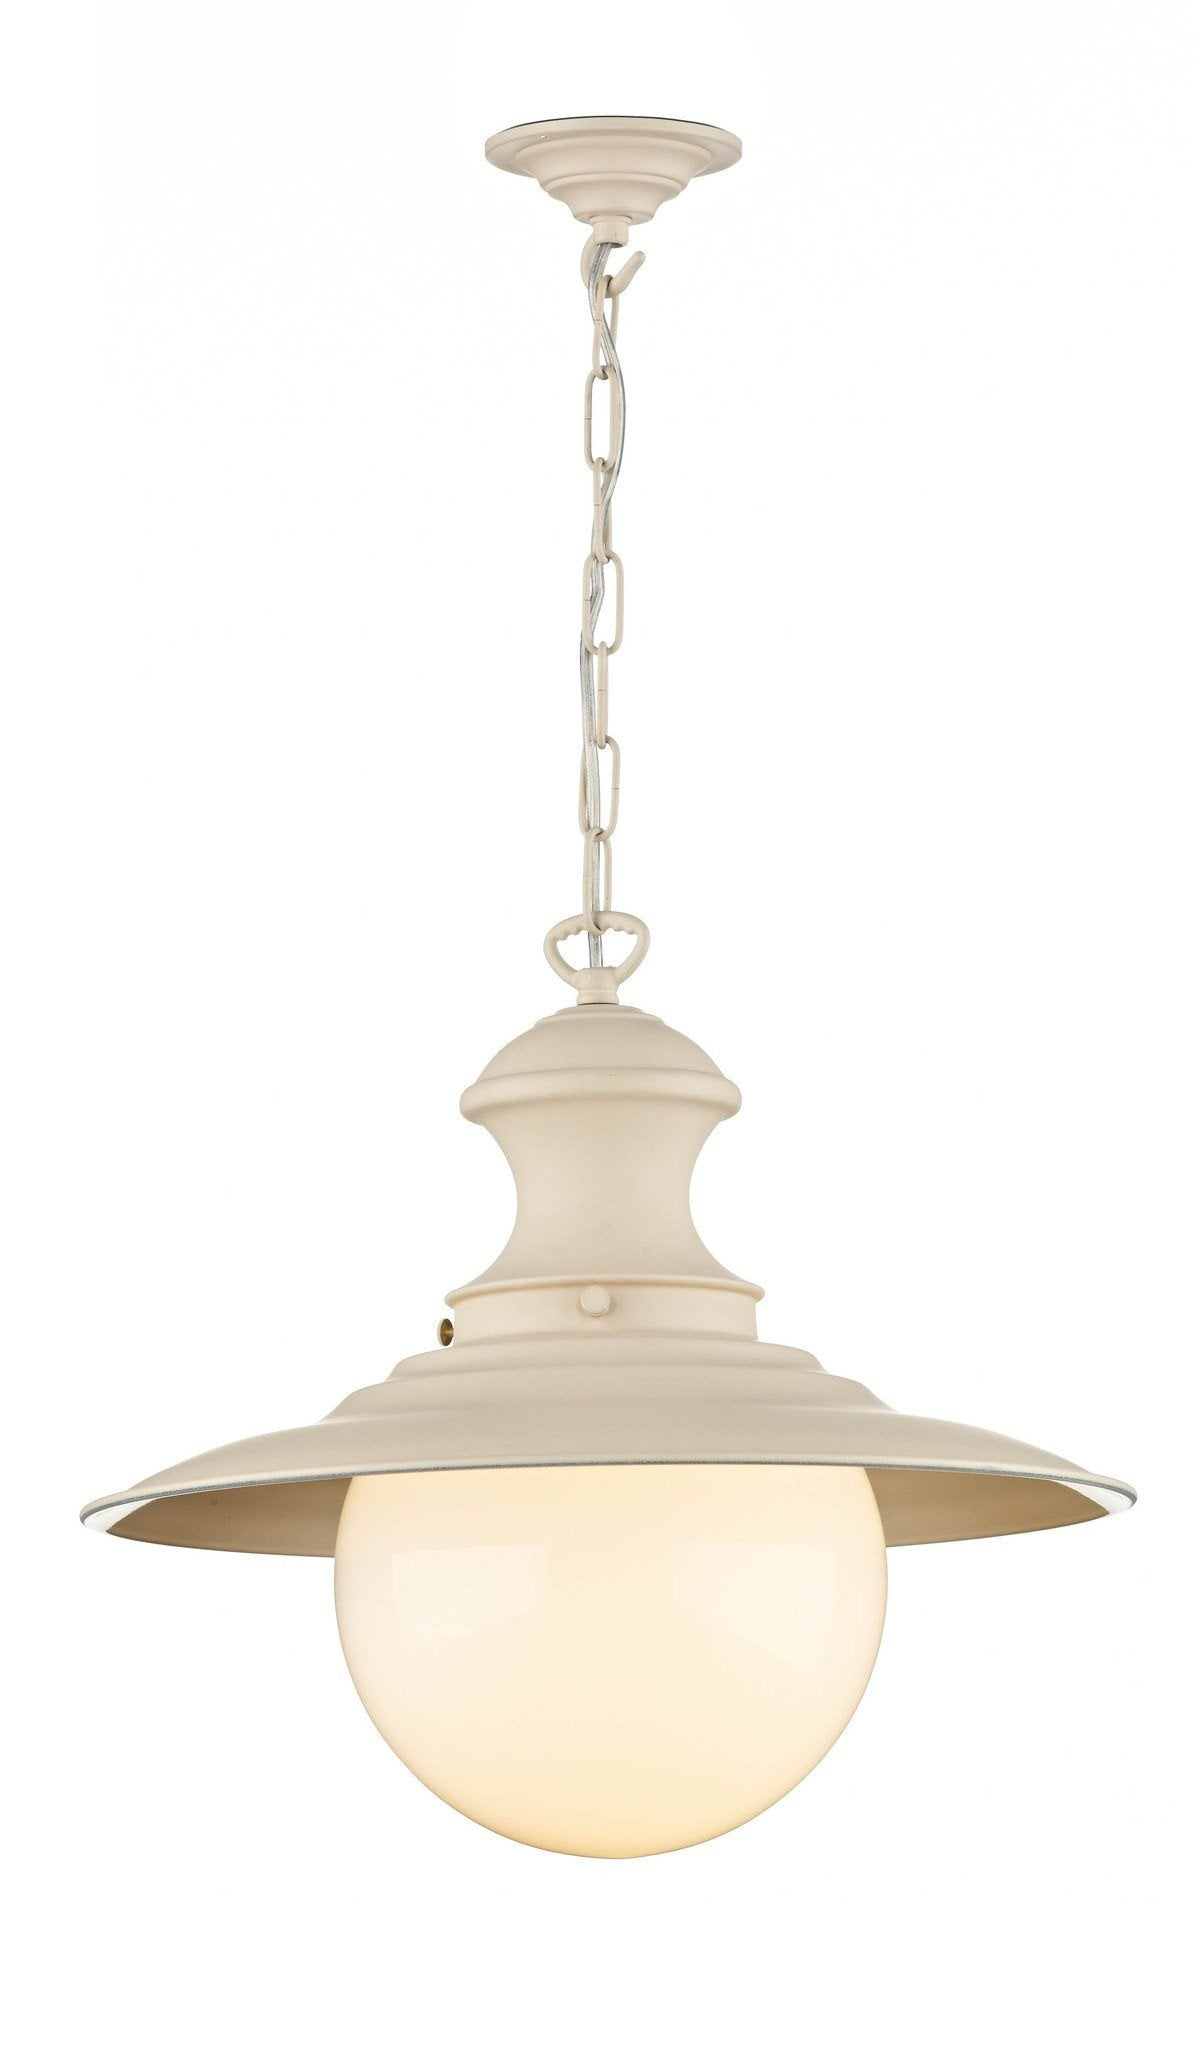 Station Lamp in Cream - London Lighting - 1